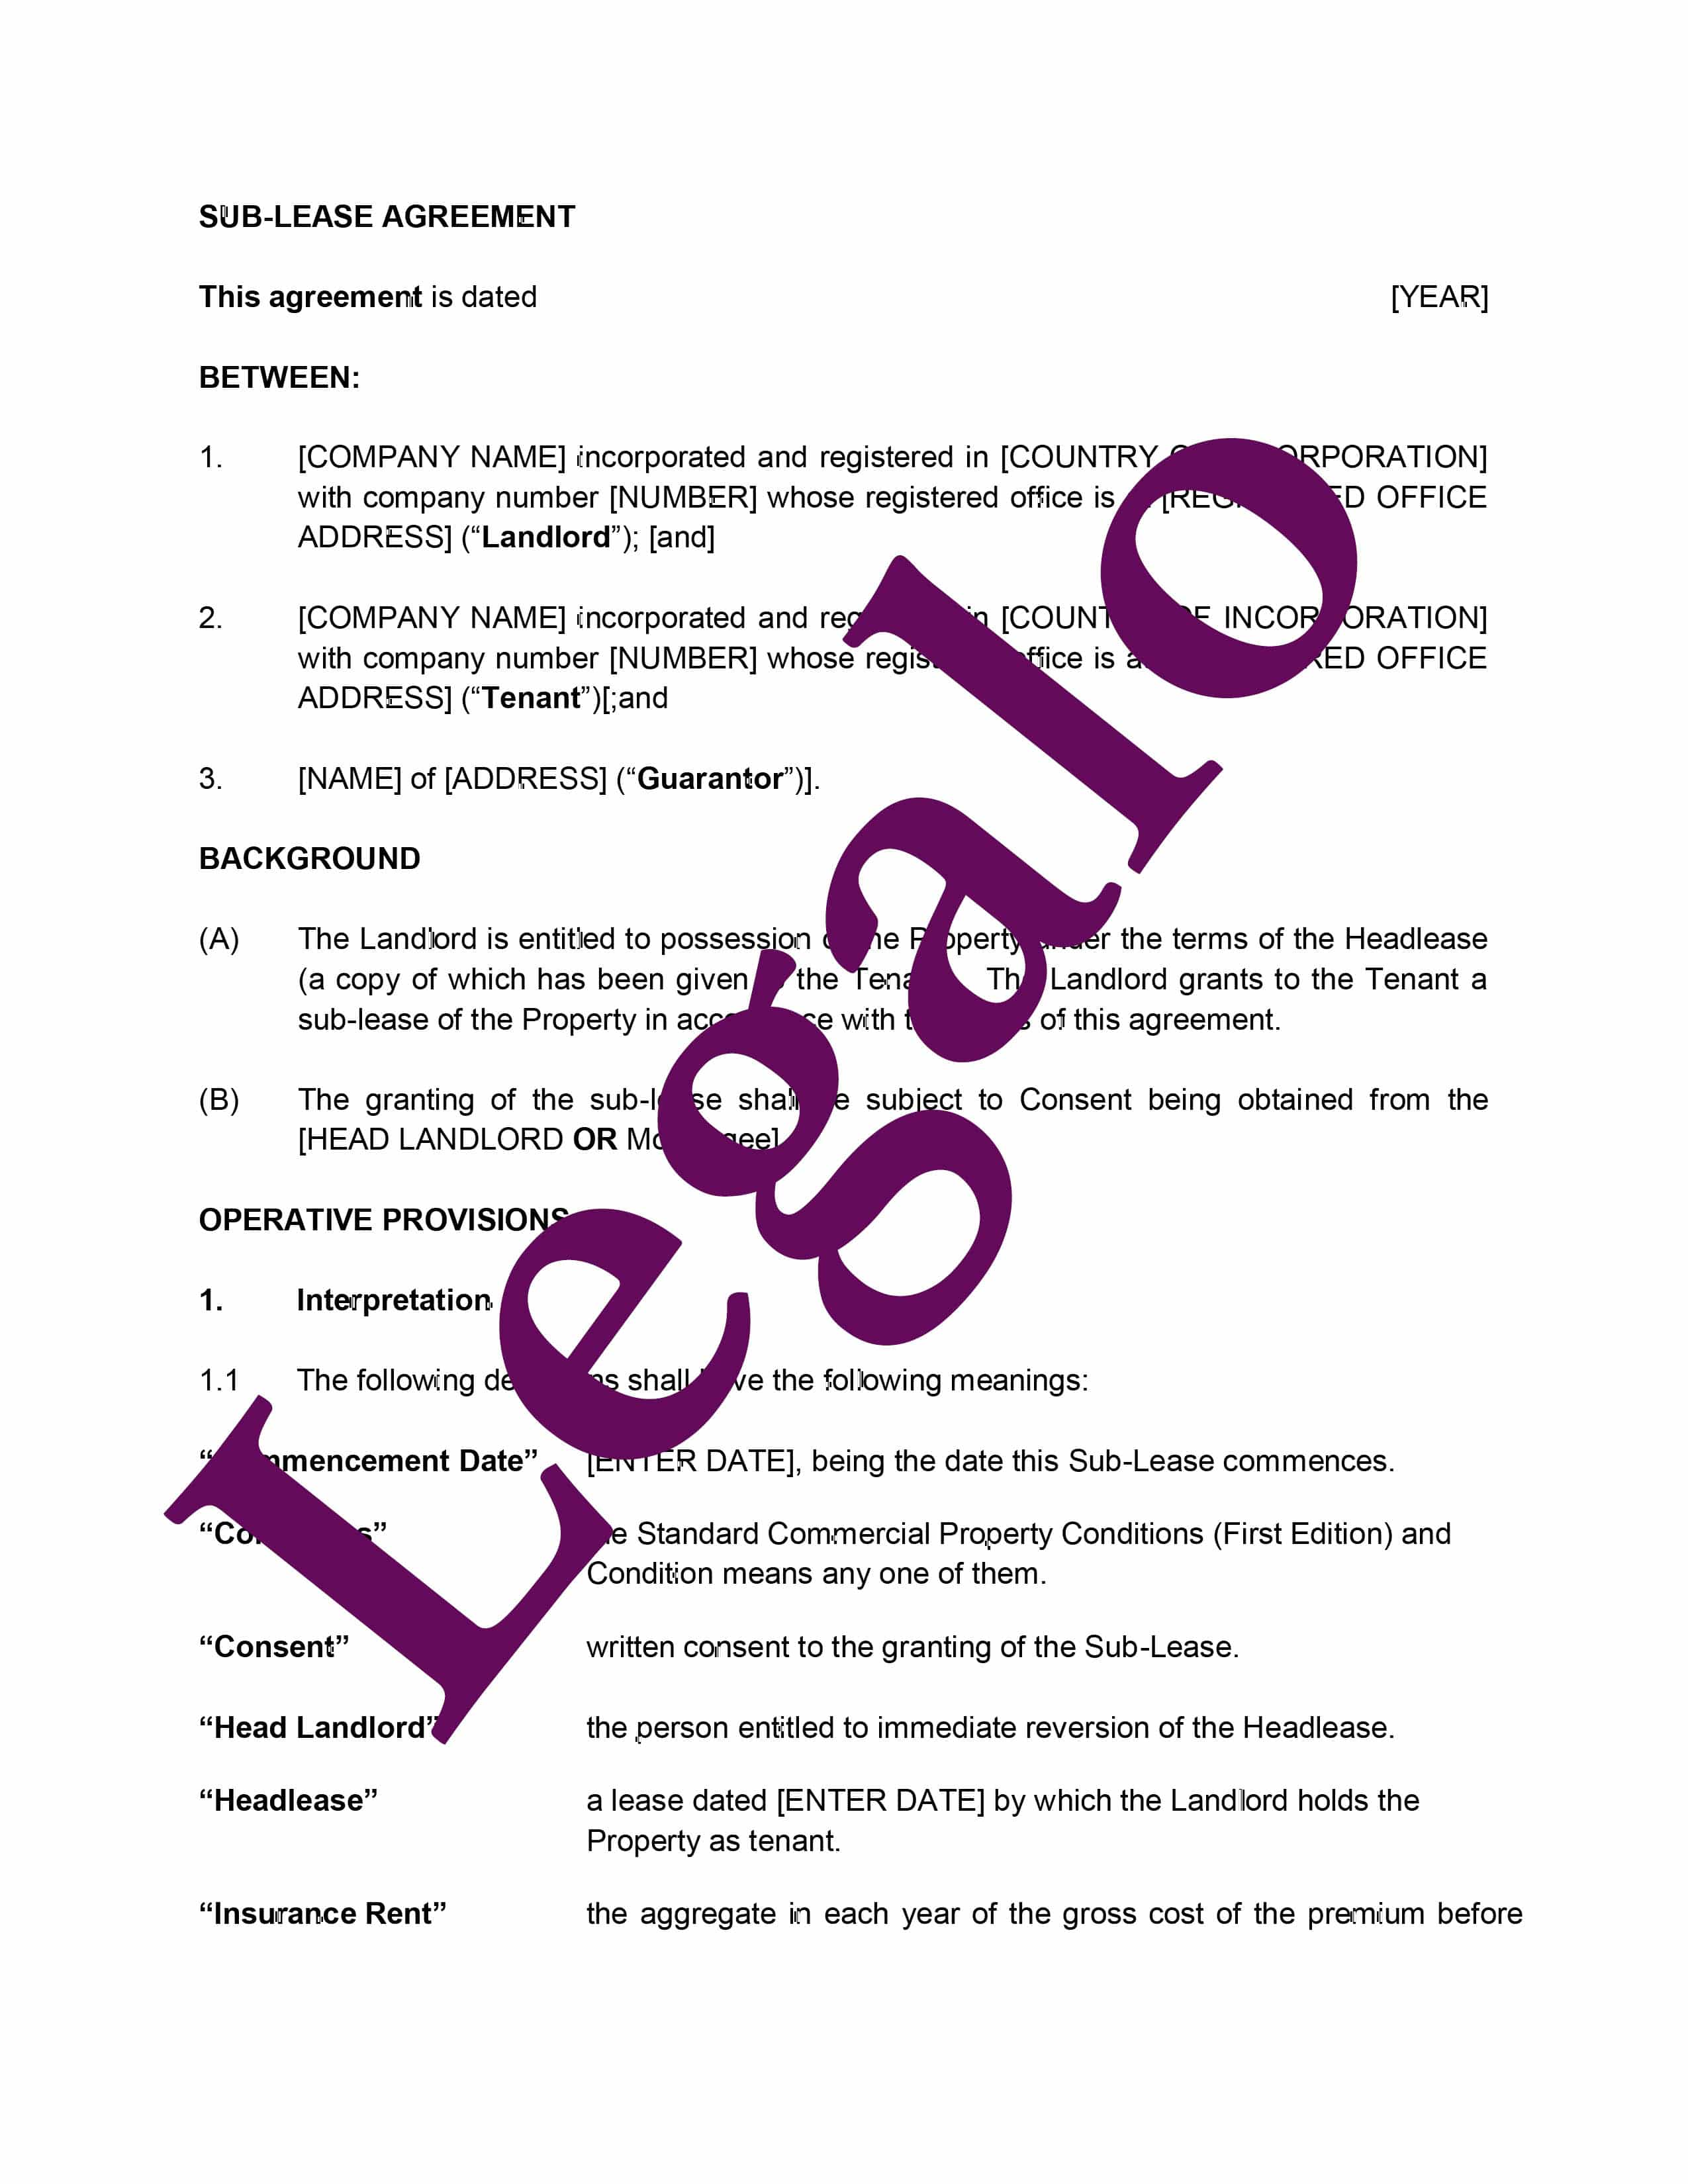 sub-lease agreement preview image page 1